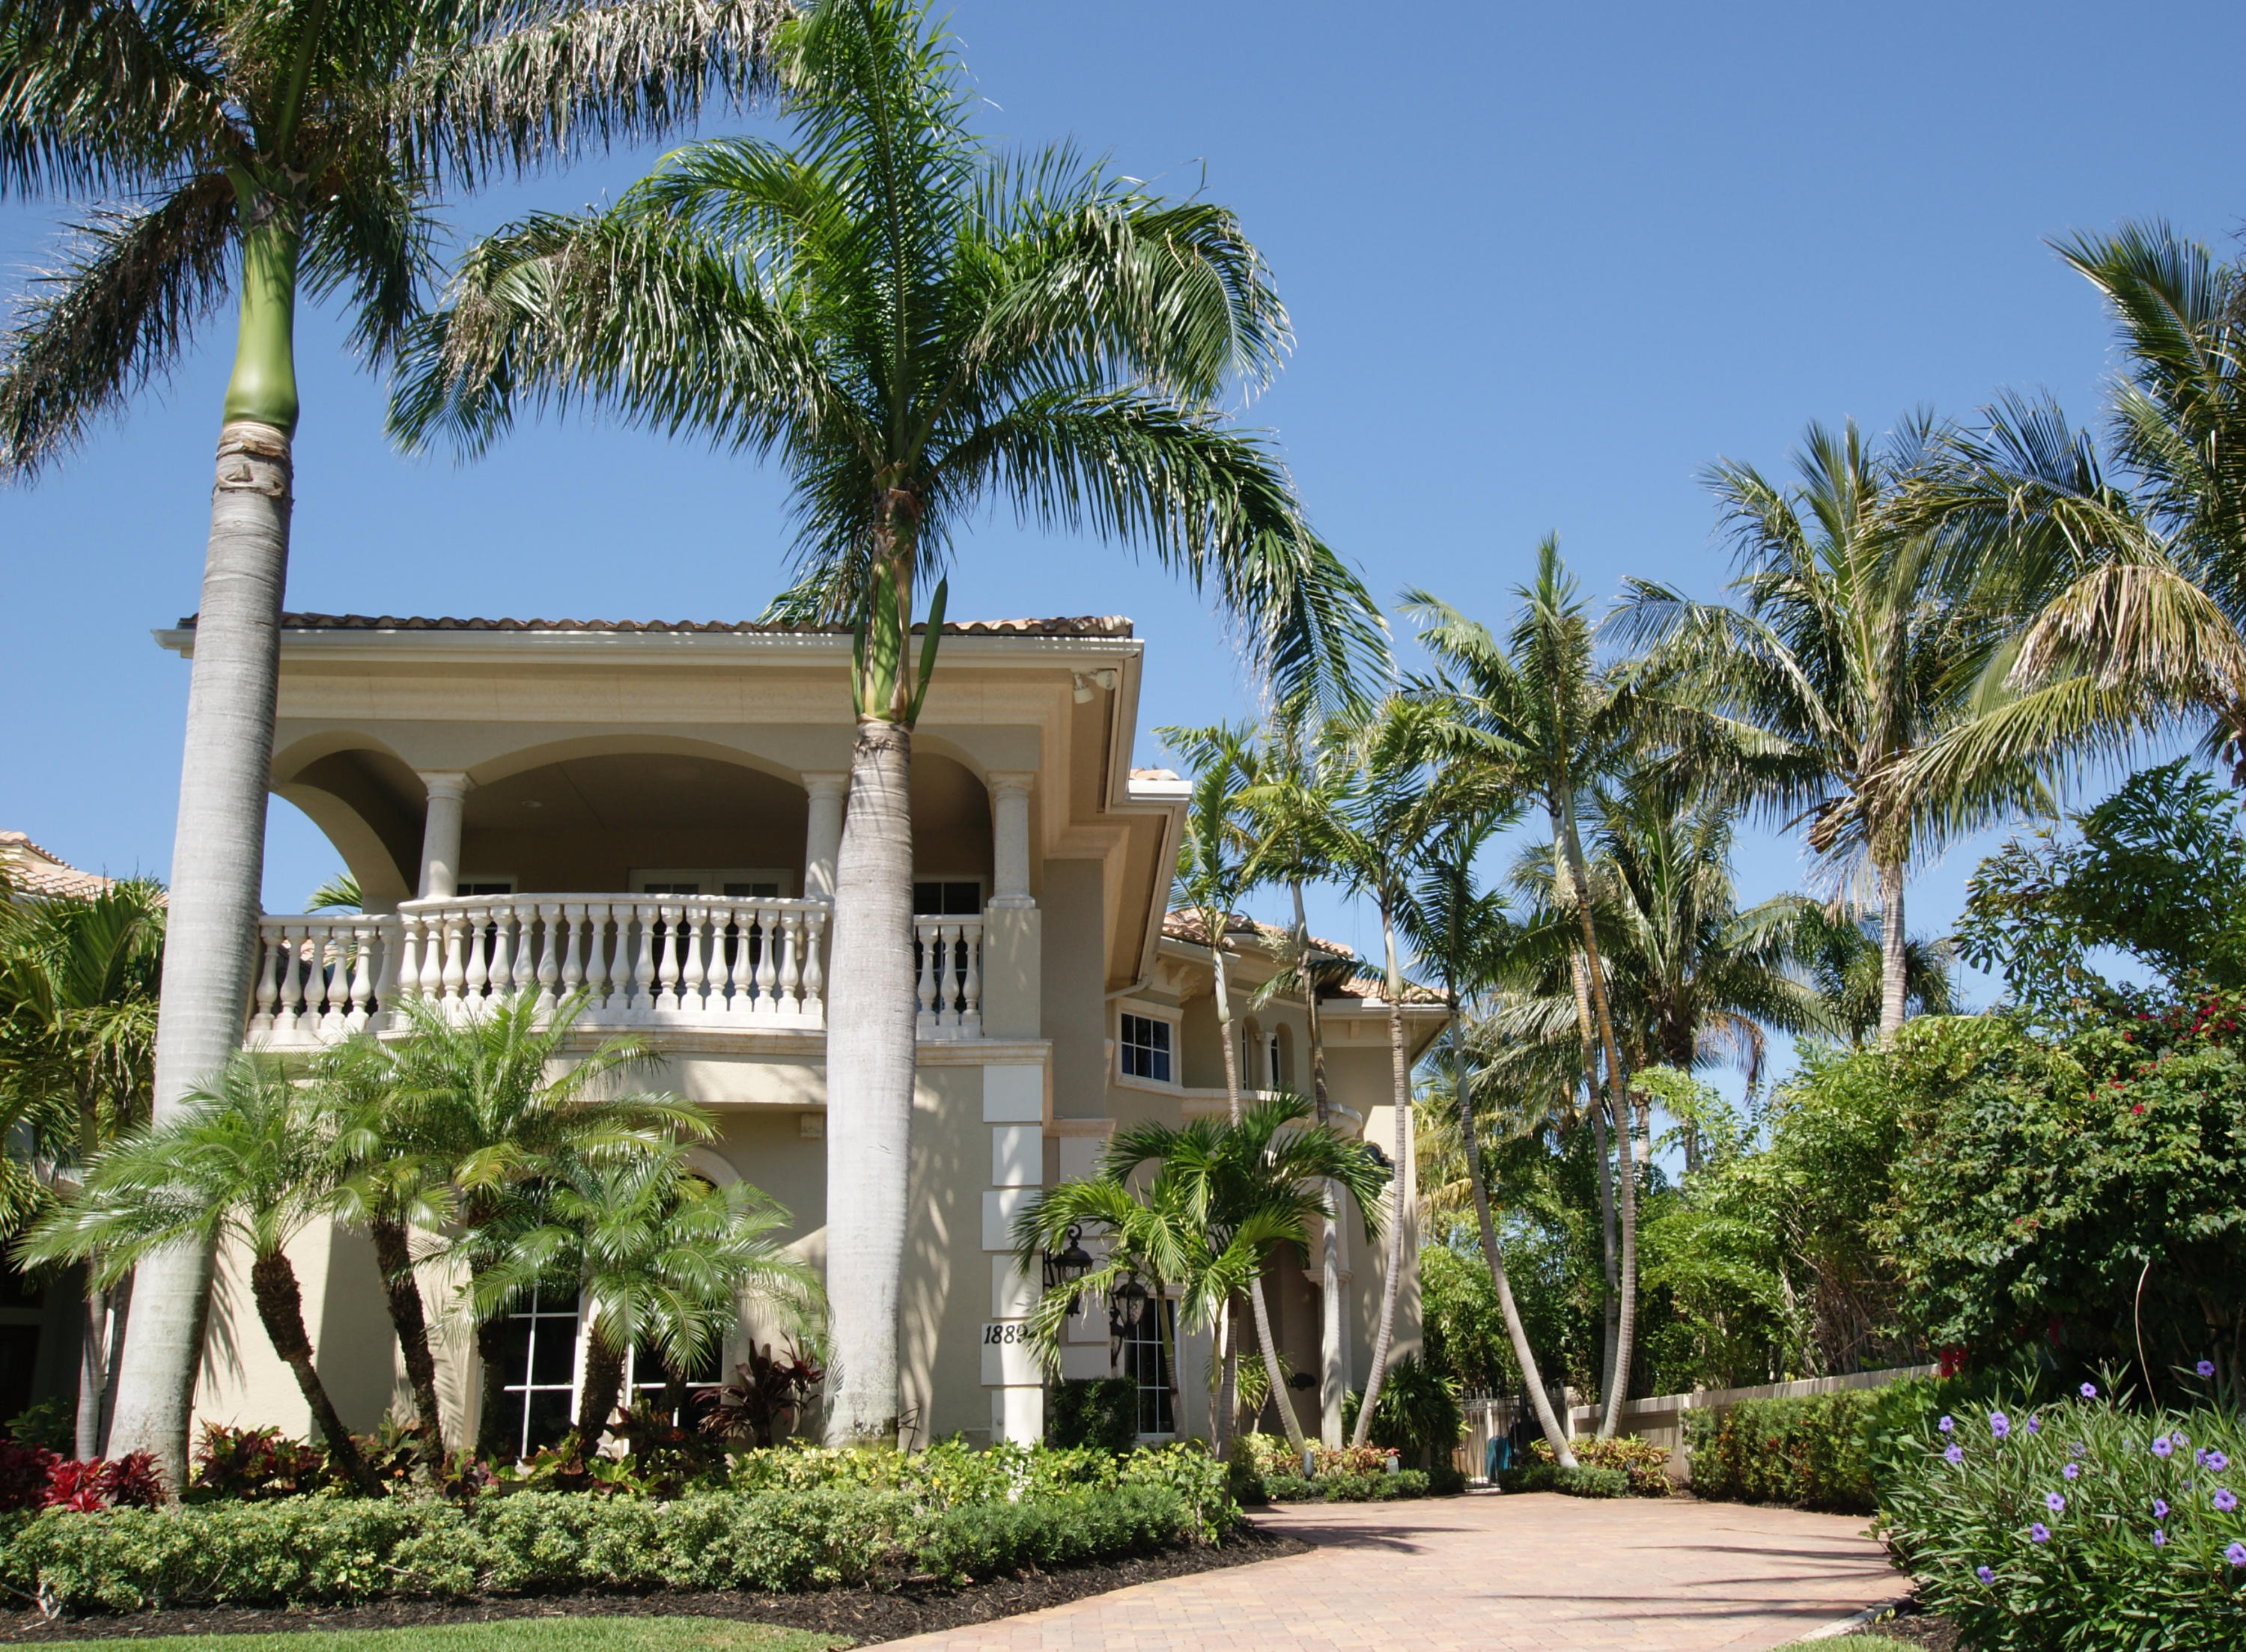 New Home for sale at 18894 Jupiter Inlet Way in Tequesta